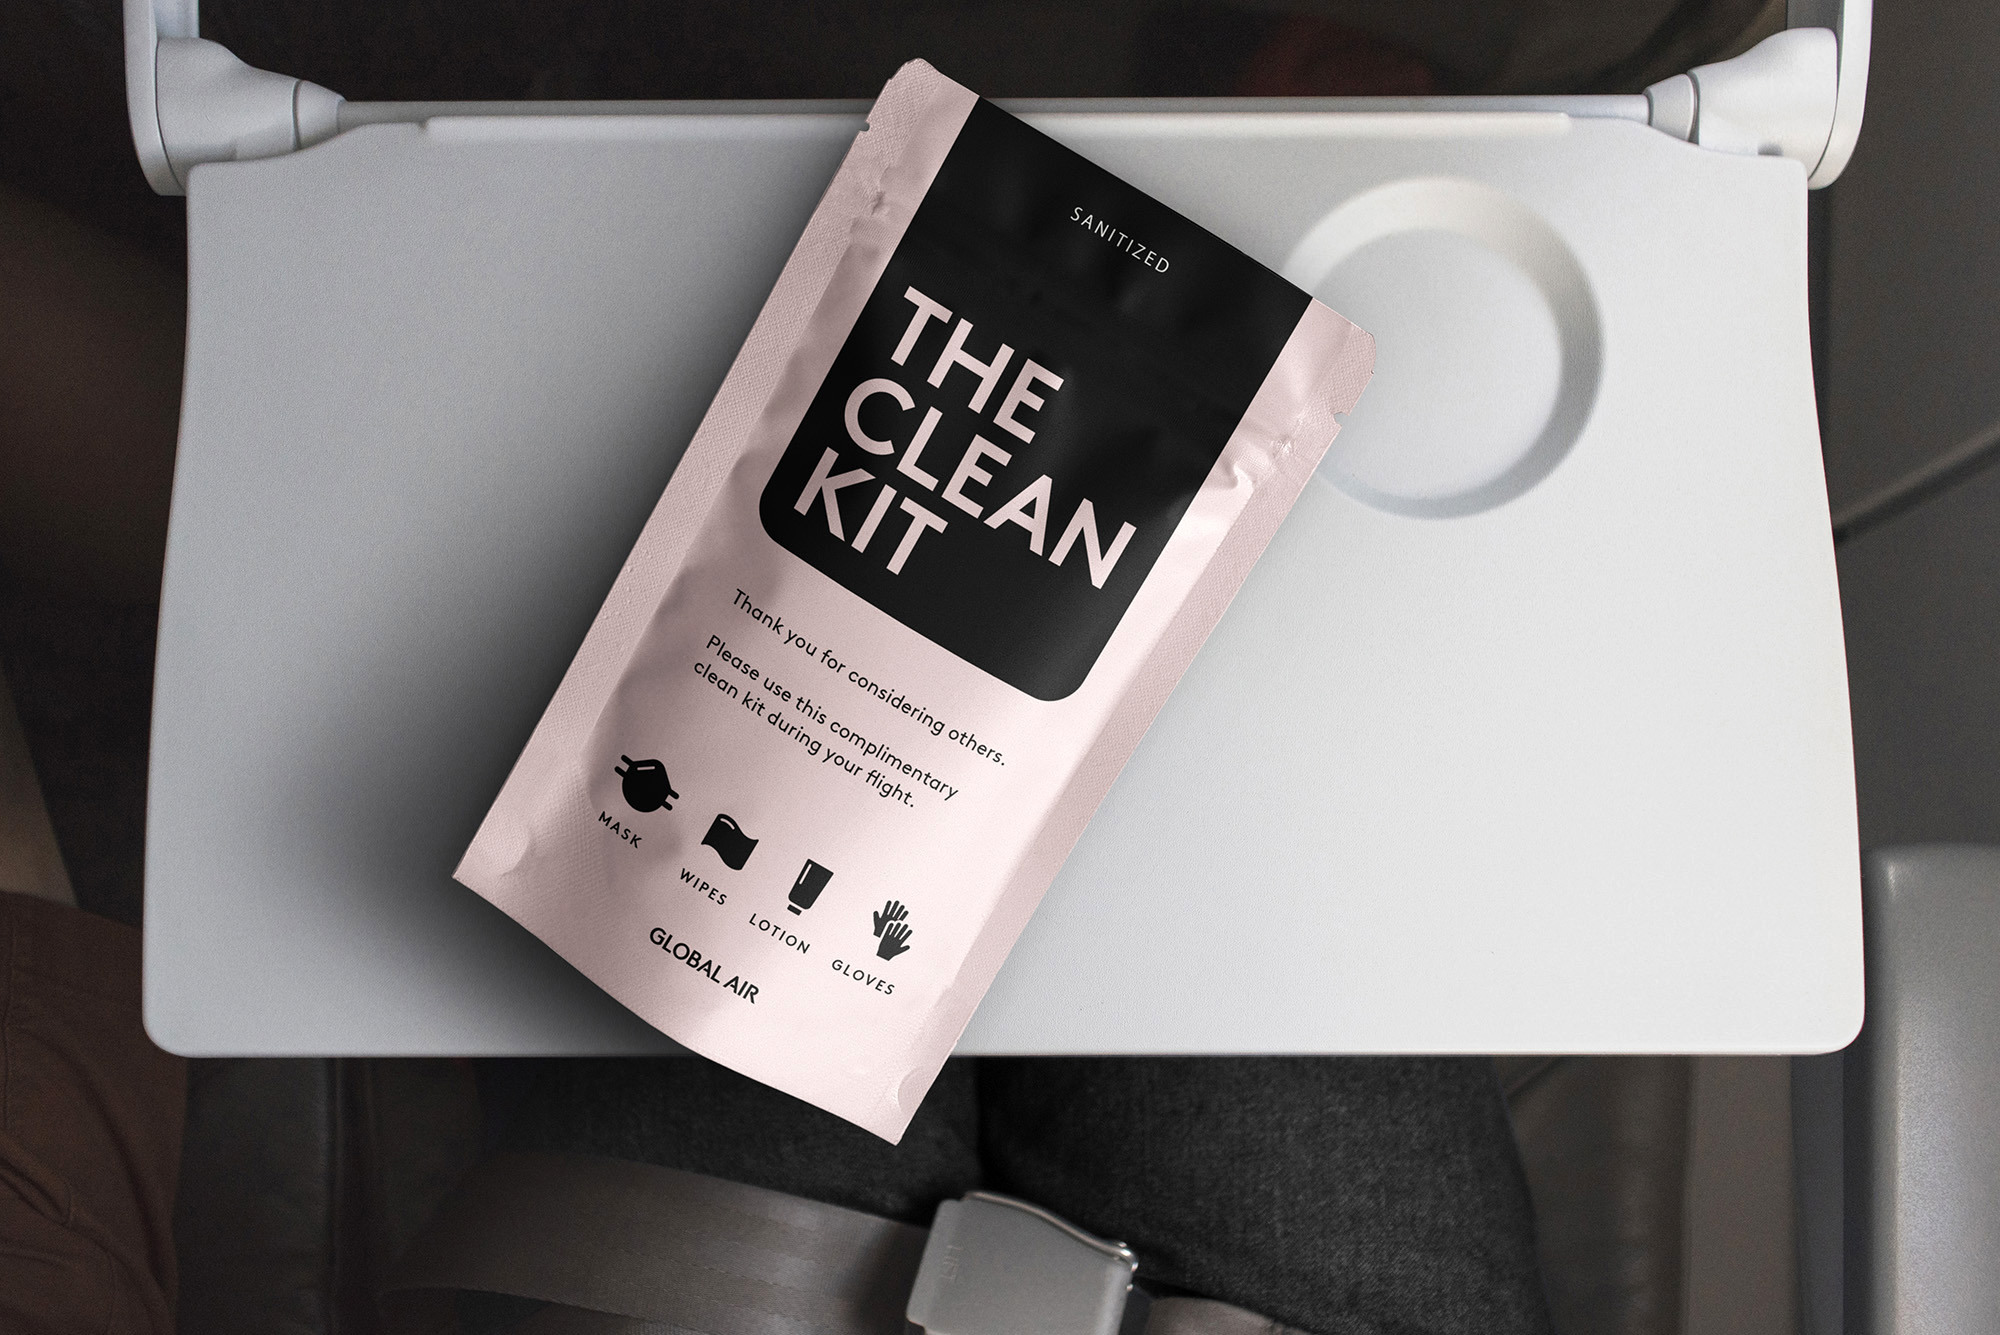 Teague Clean Design Amenity Kit